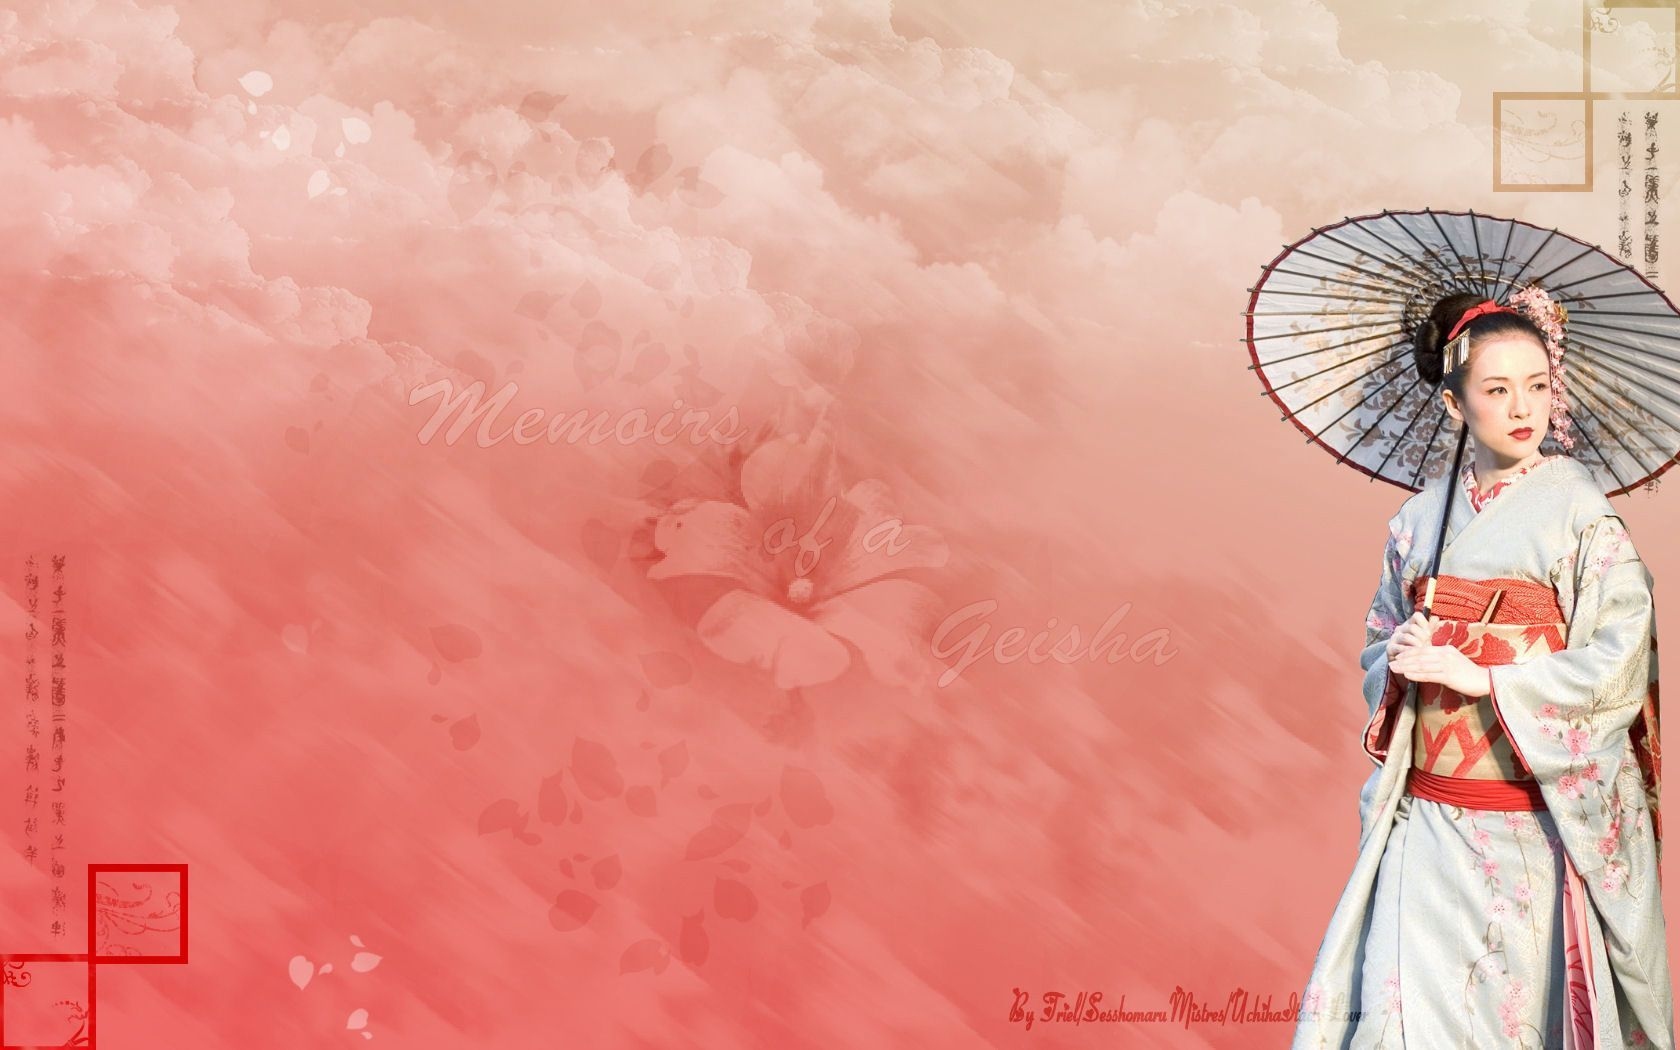 Memoirs Of A Geisha Wallpapers Top Free Memoirs Of A Geisha